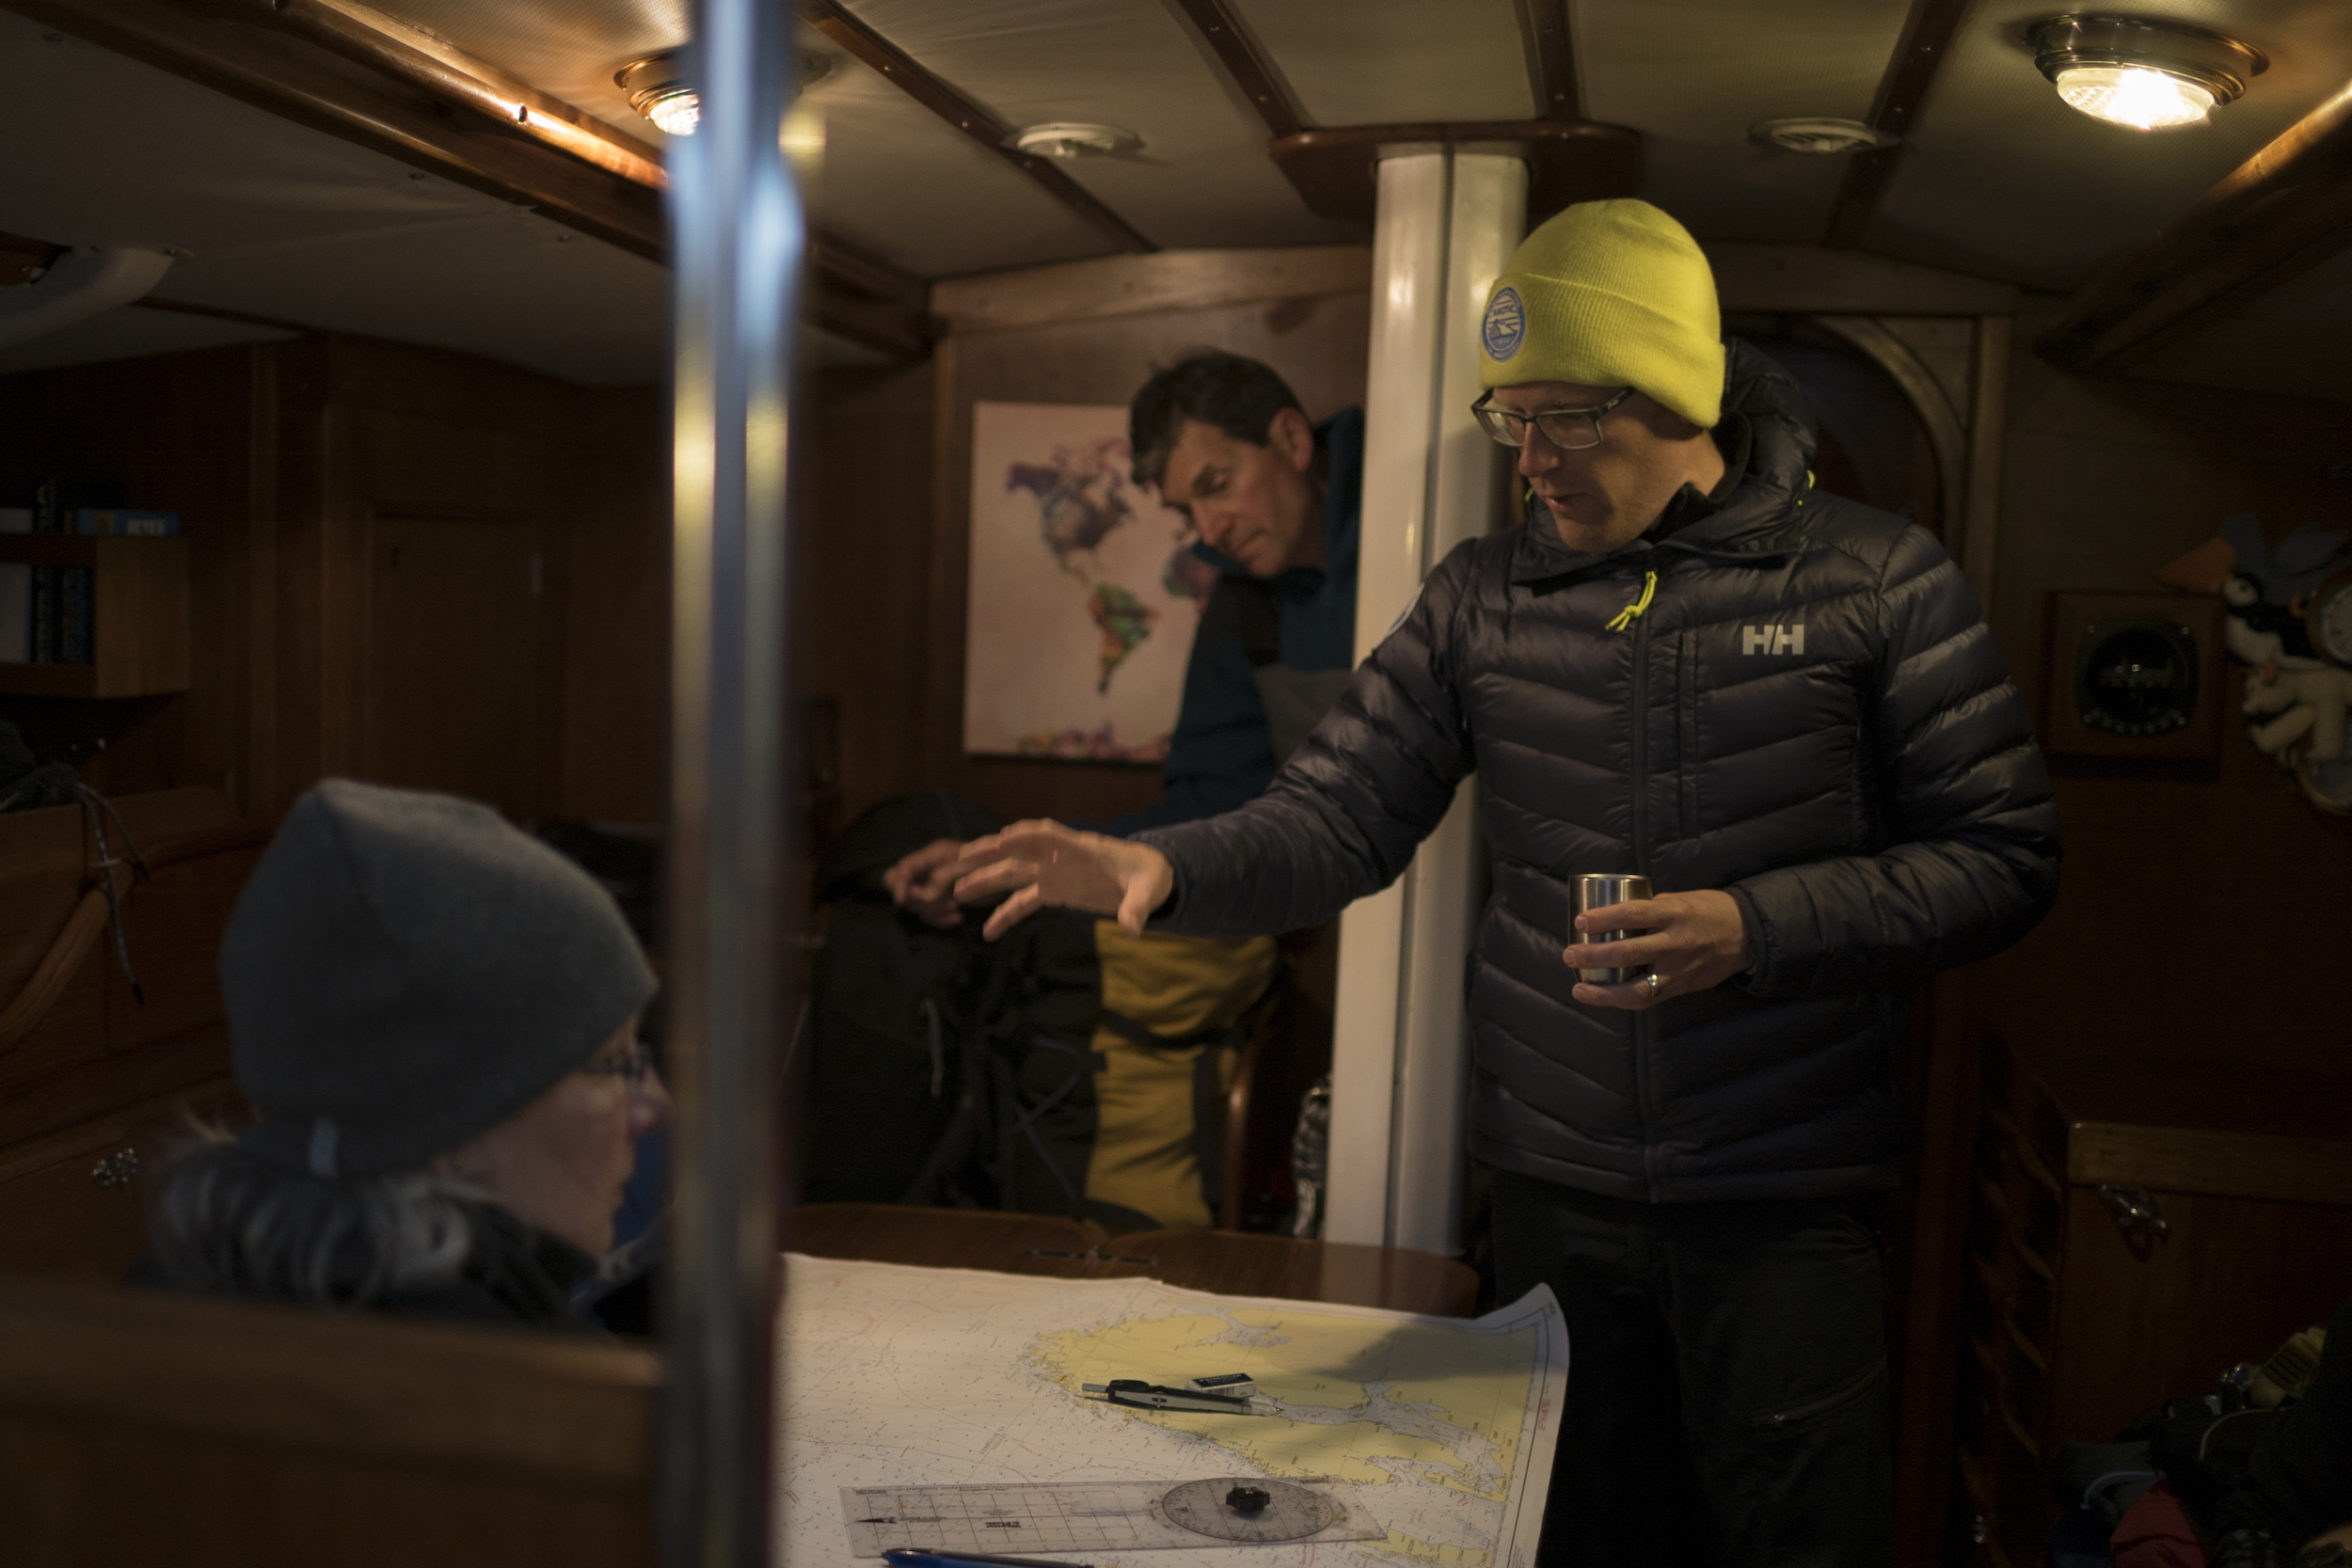 Andy completes the last chart briefing (with coffee!) at midnight before departure.